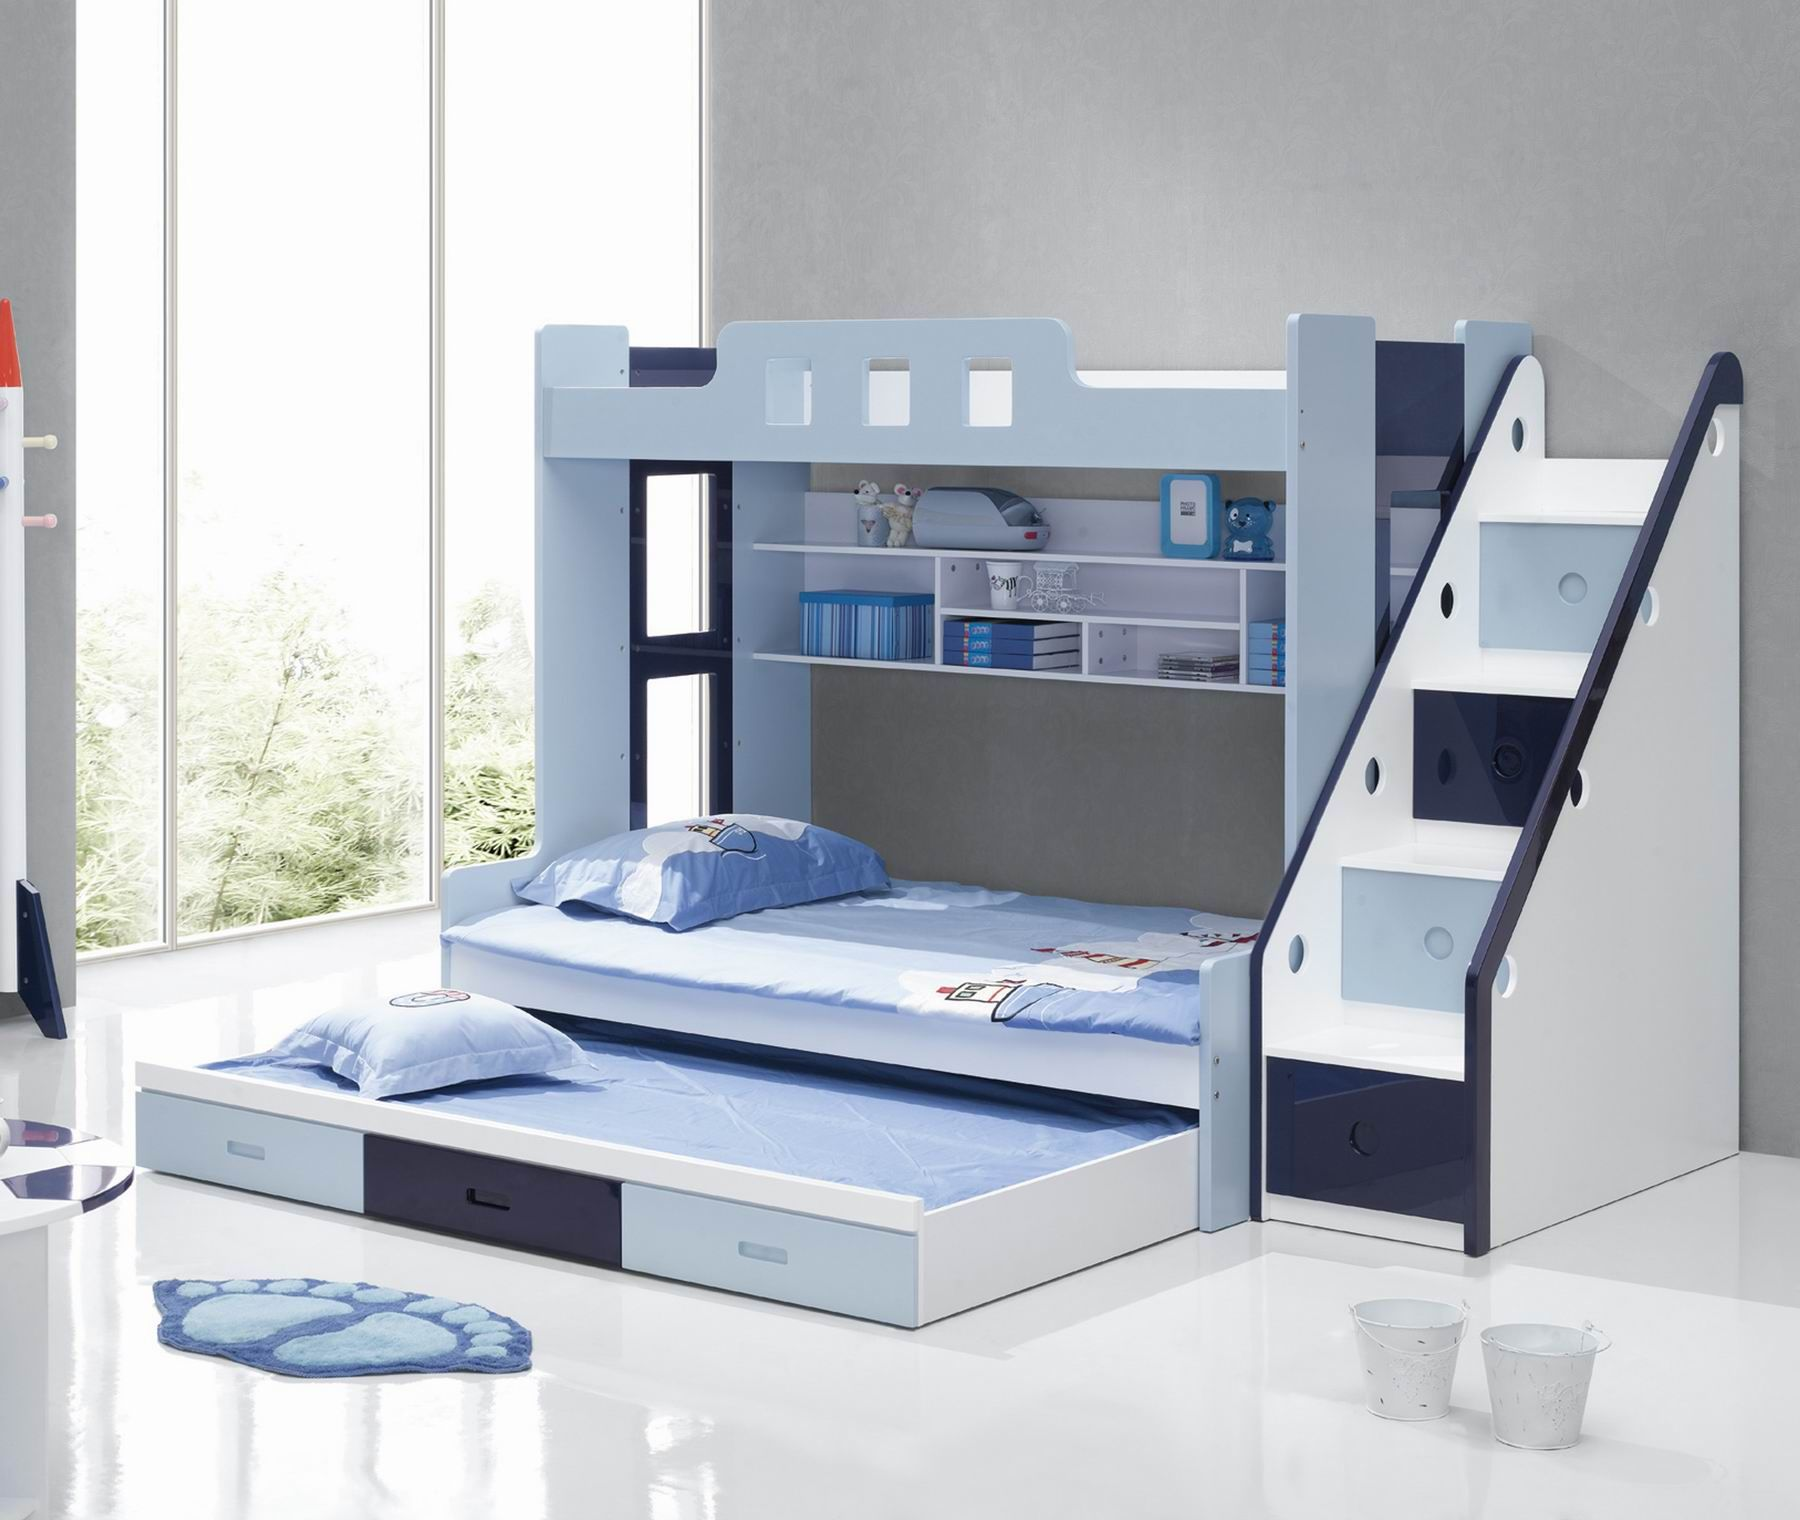 Kids Beds Rejig Home Design Wooden Bunk Beds Bunk Beds With Stairs Modern Bunk Beds